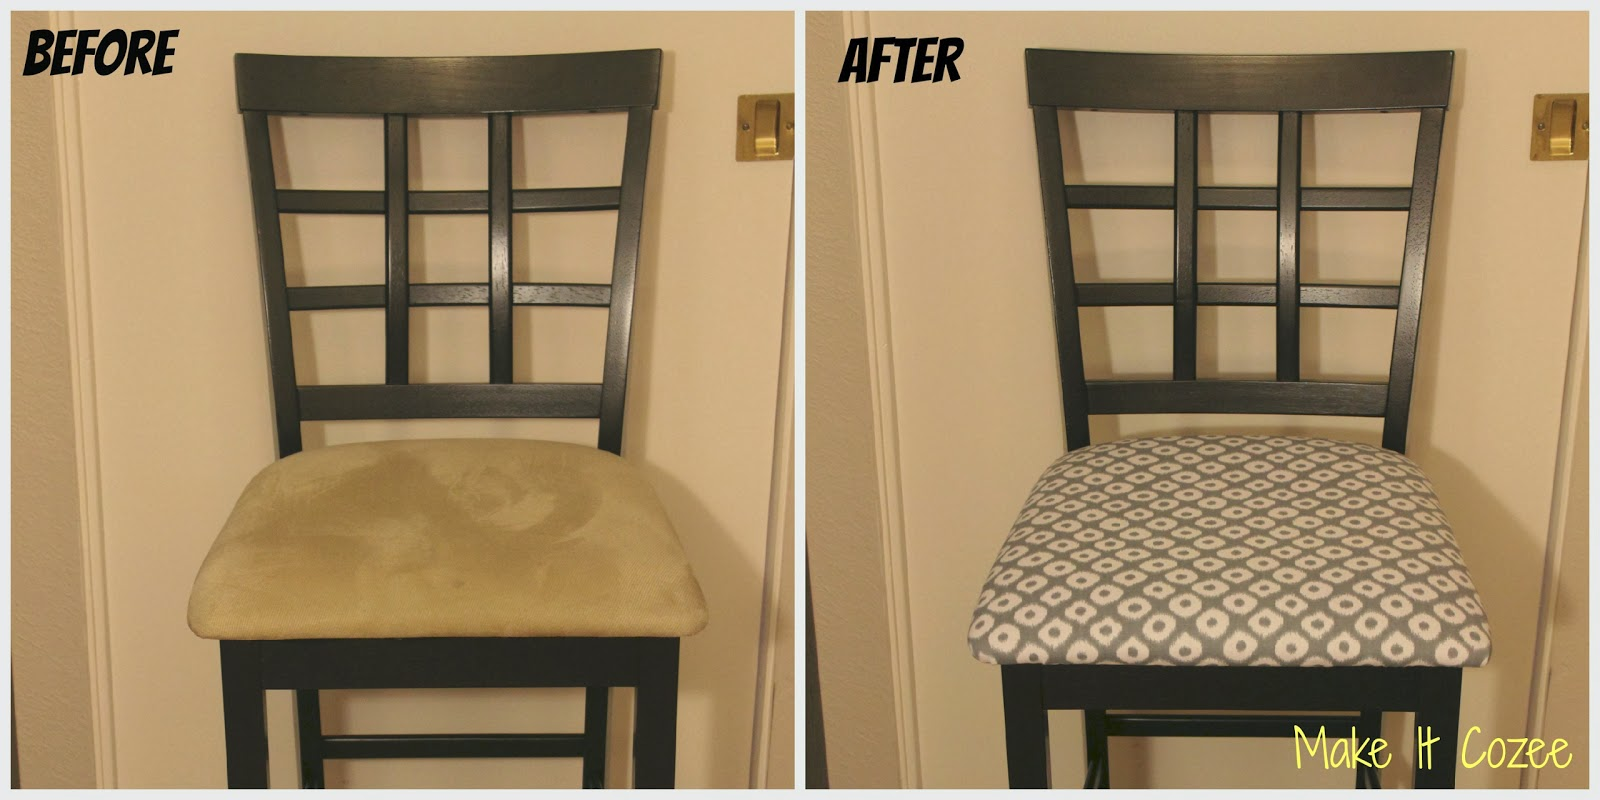 Best Fabric For Reupholstering Dining Room Chairs: Make It Cozee: DIY: Reupholstery Under $10